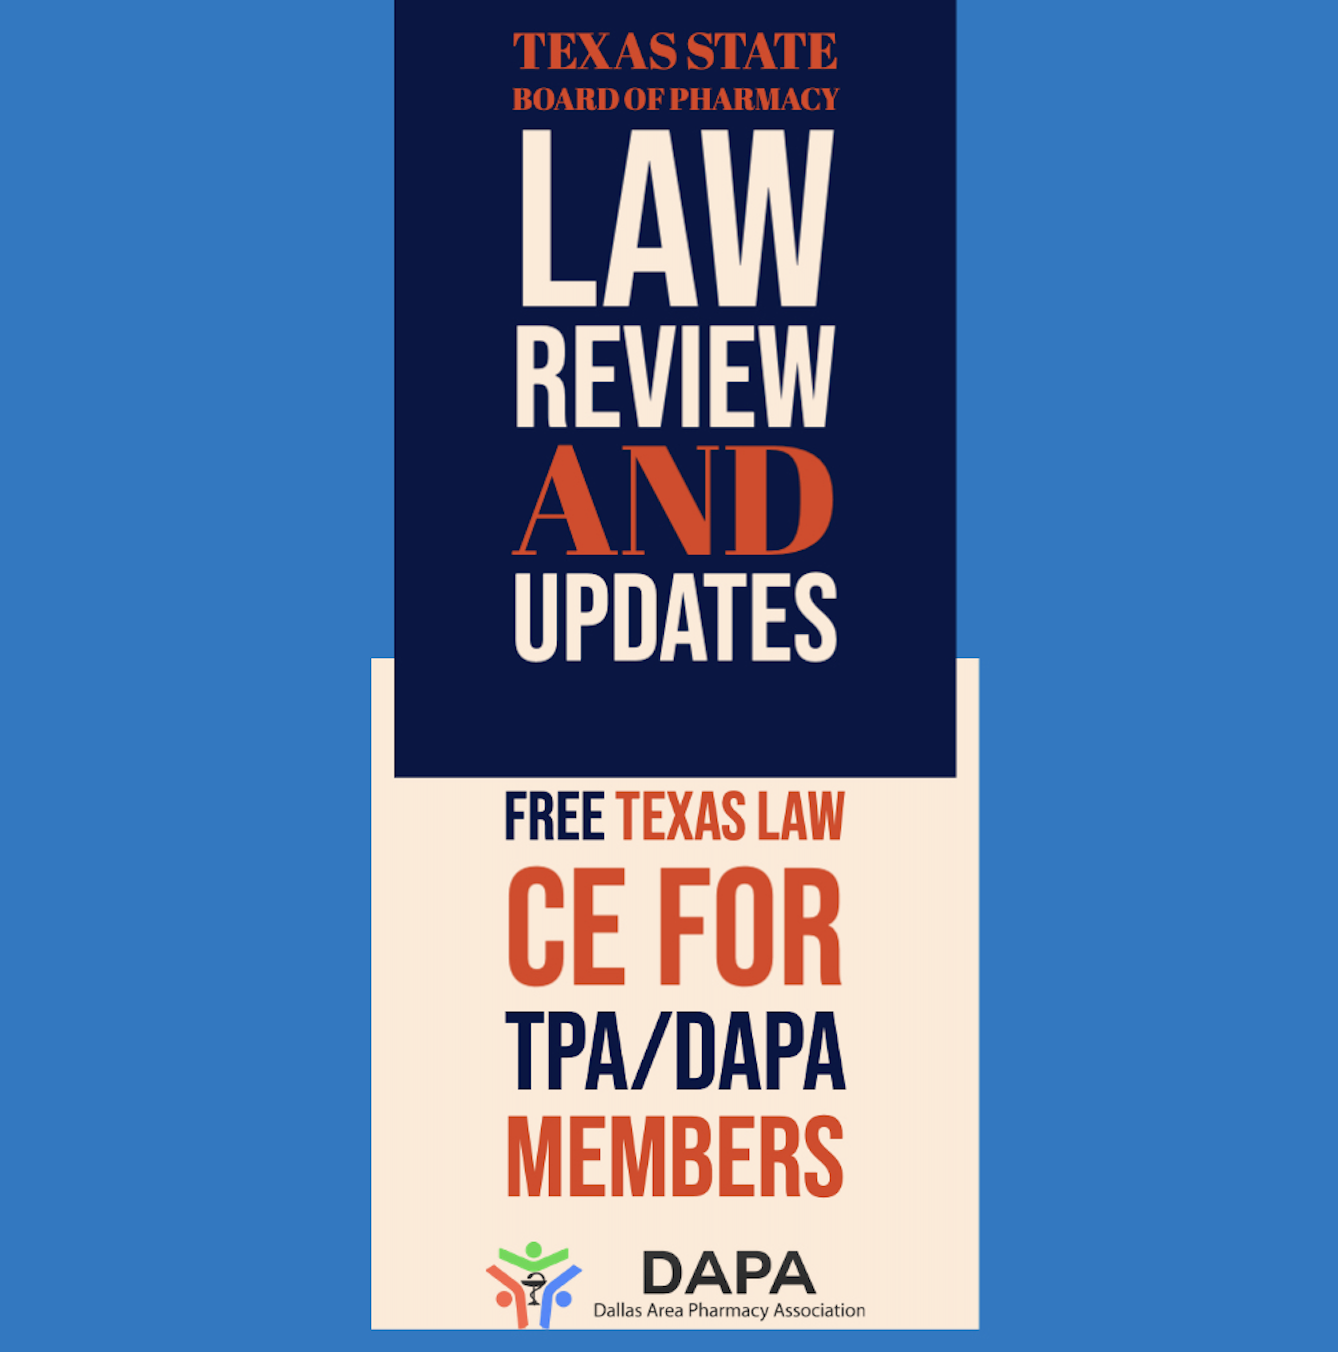 February 4, 2021 Texas Law Updates & Review Presentation